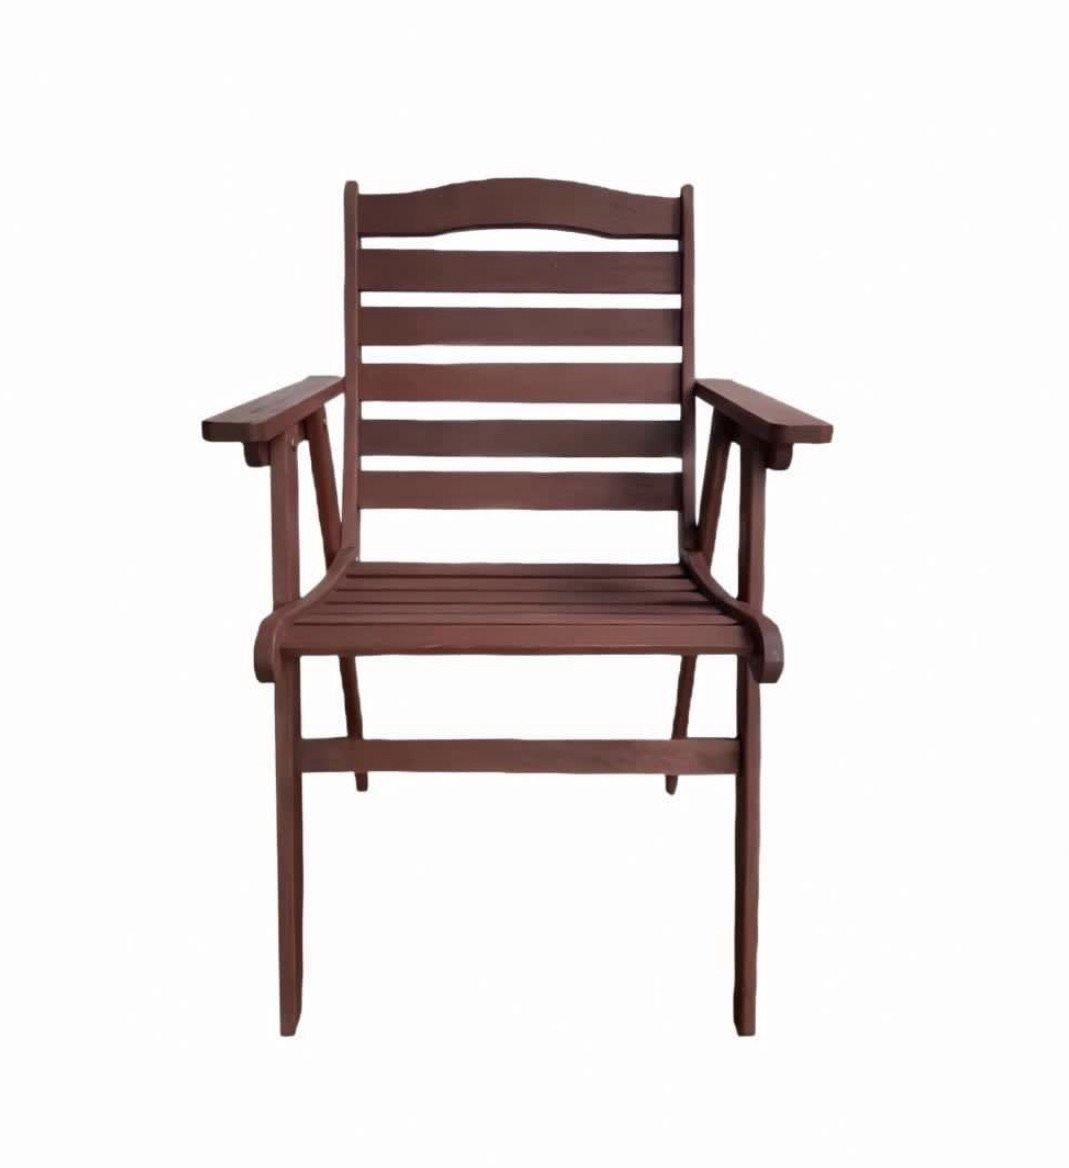 Keruing Corkorien Chair - Sitra Global